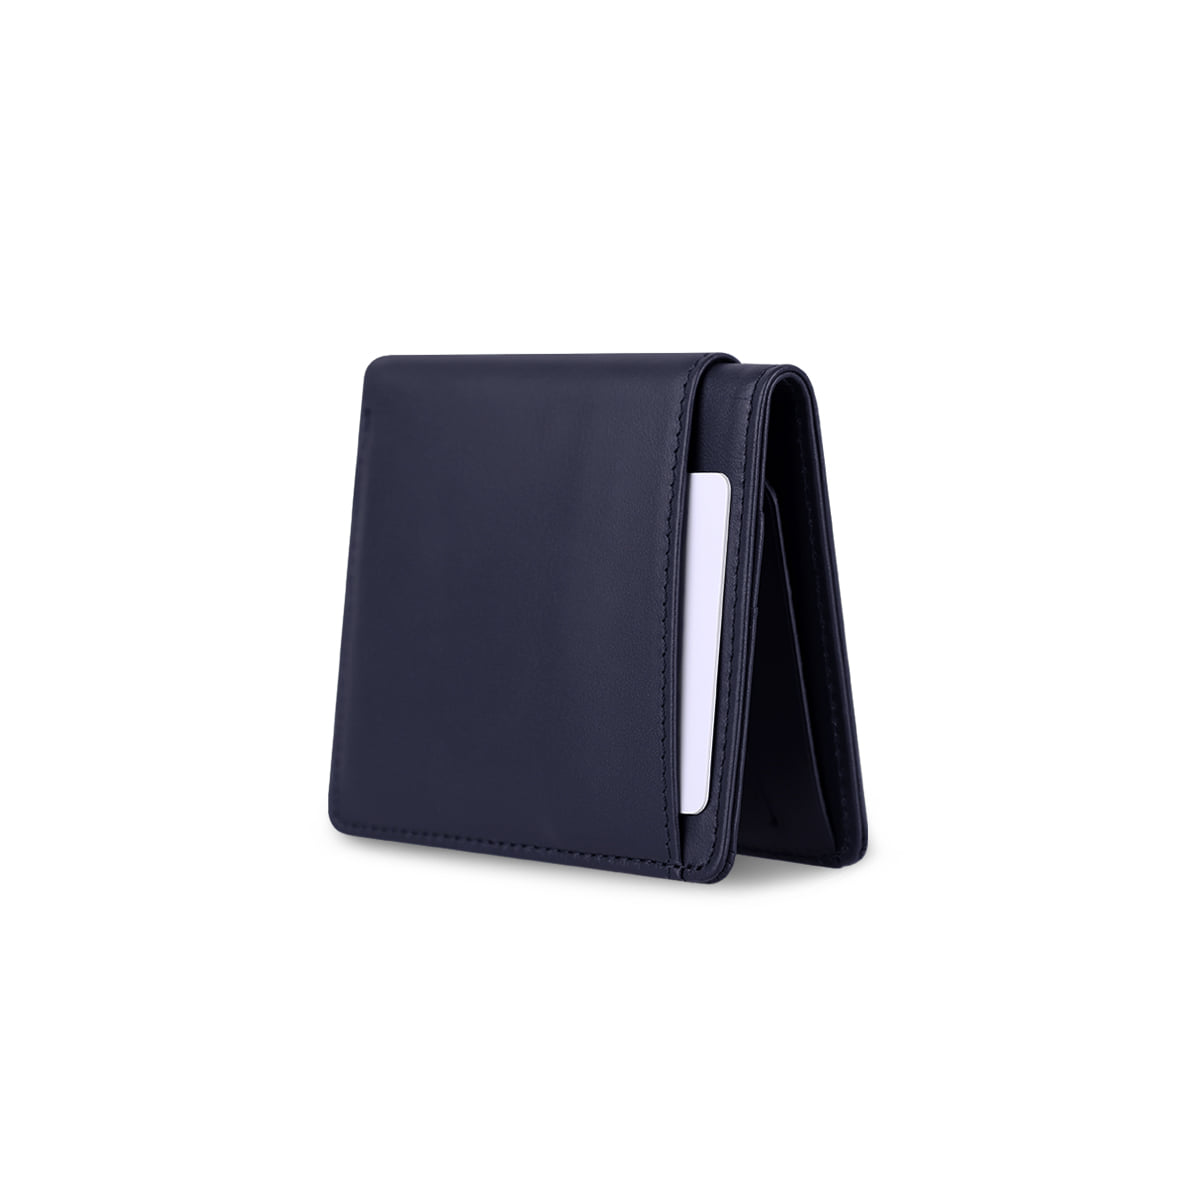 THE CITY WALLET DARK NAVY